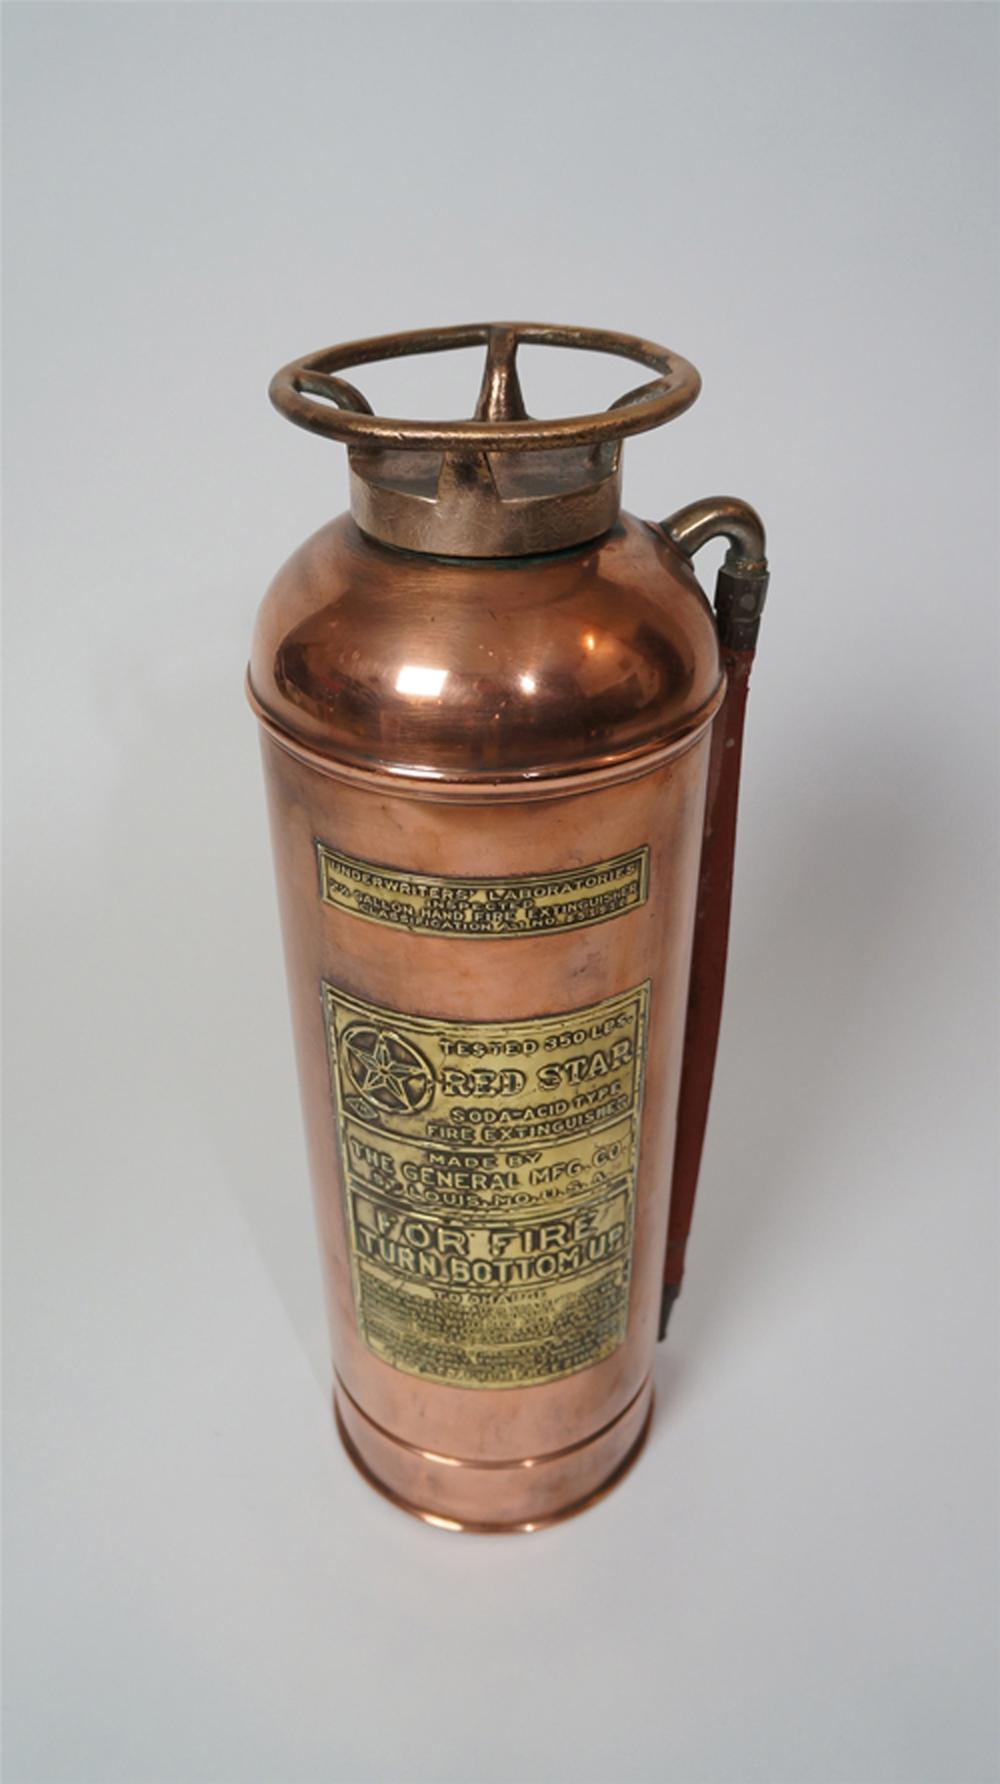 Sharp 1920's Red Star filling station service department copper and brass fire extinguisher. - Front 3/4 - 170594